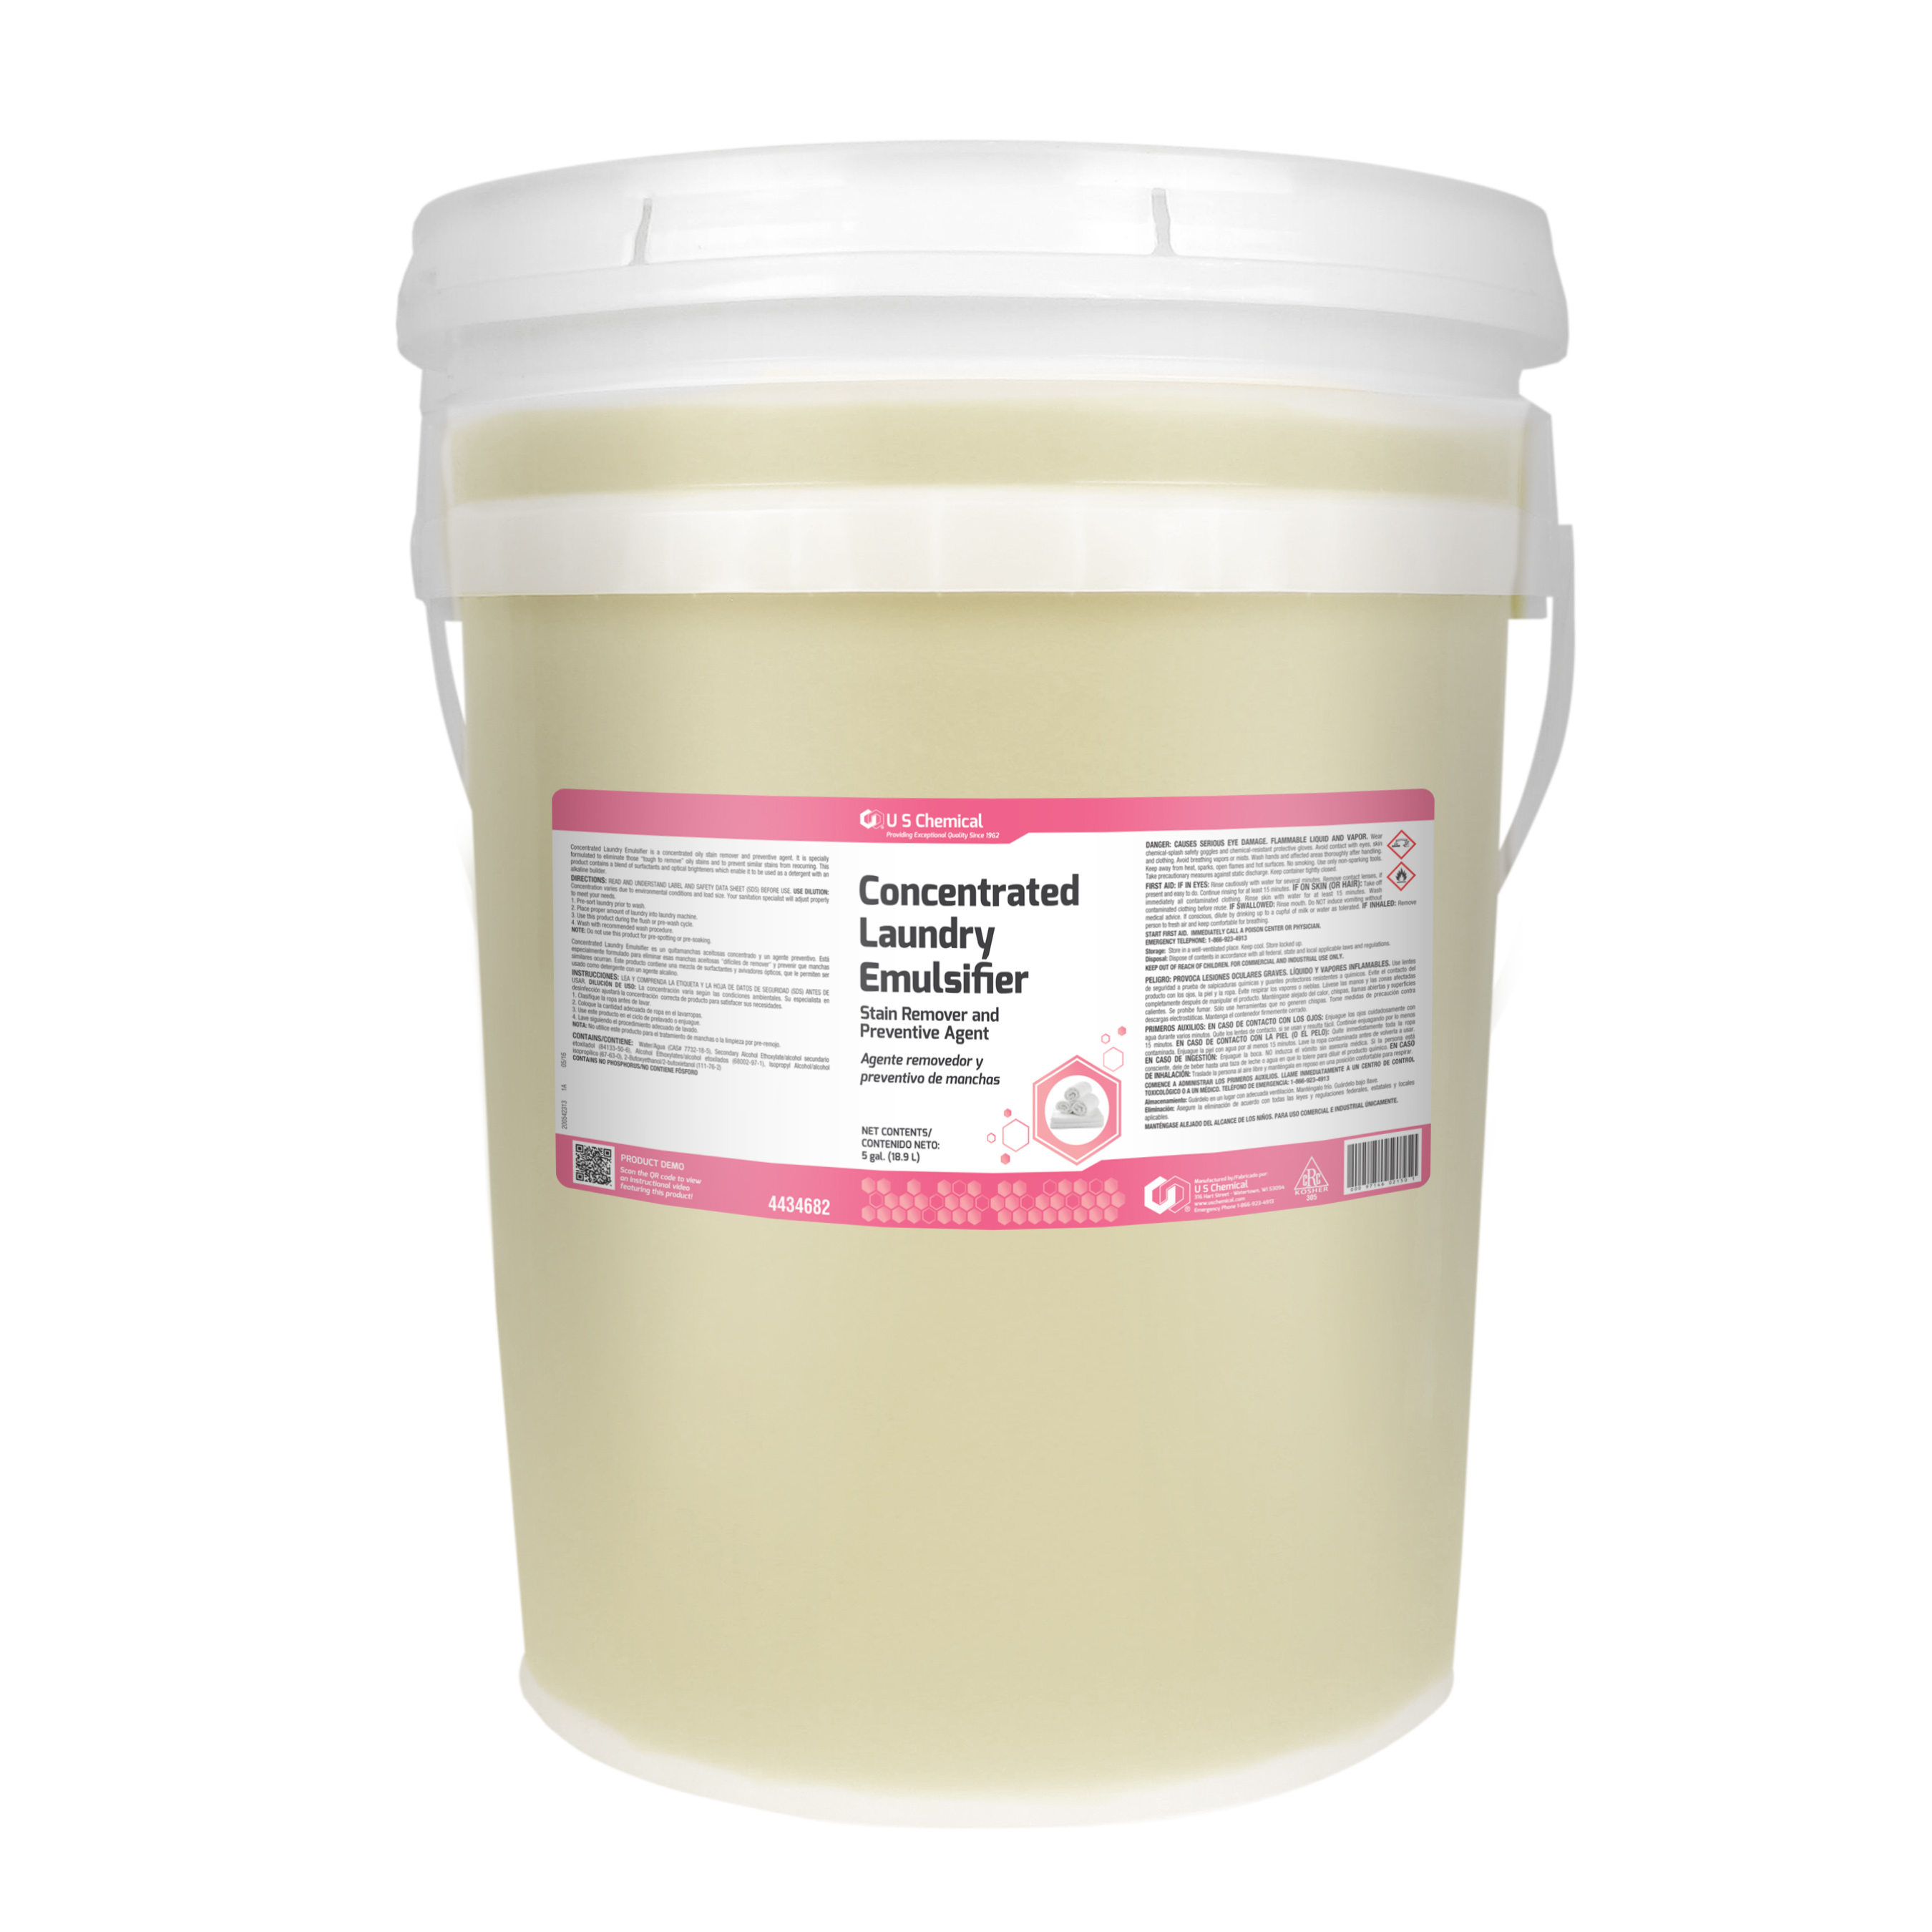 4434682_CONCENTRATED_LAUNDRY_EMULSIFIER_5GA